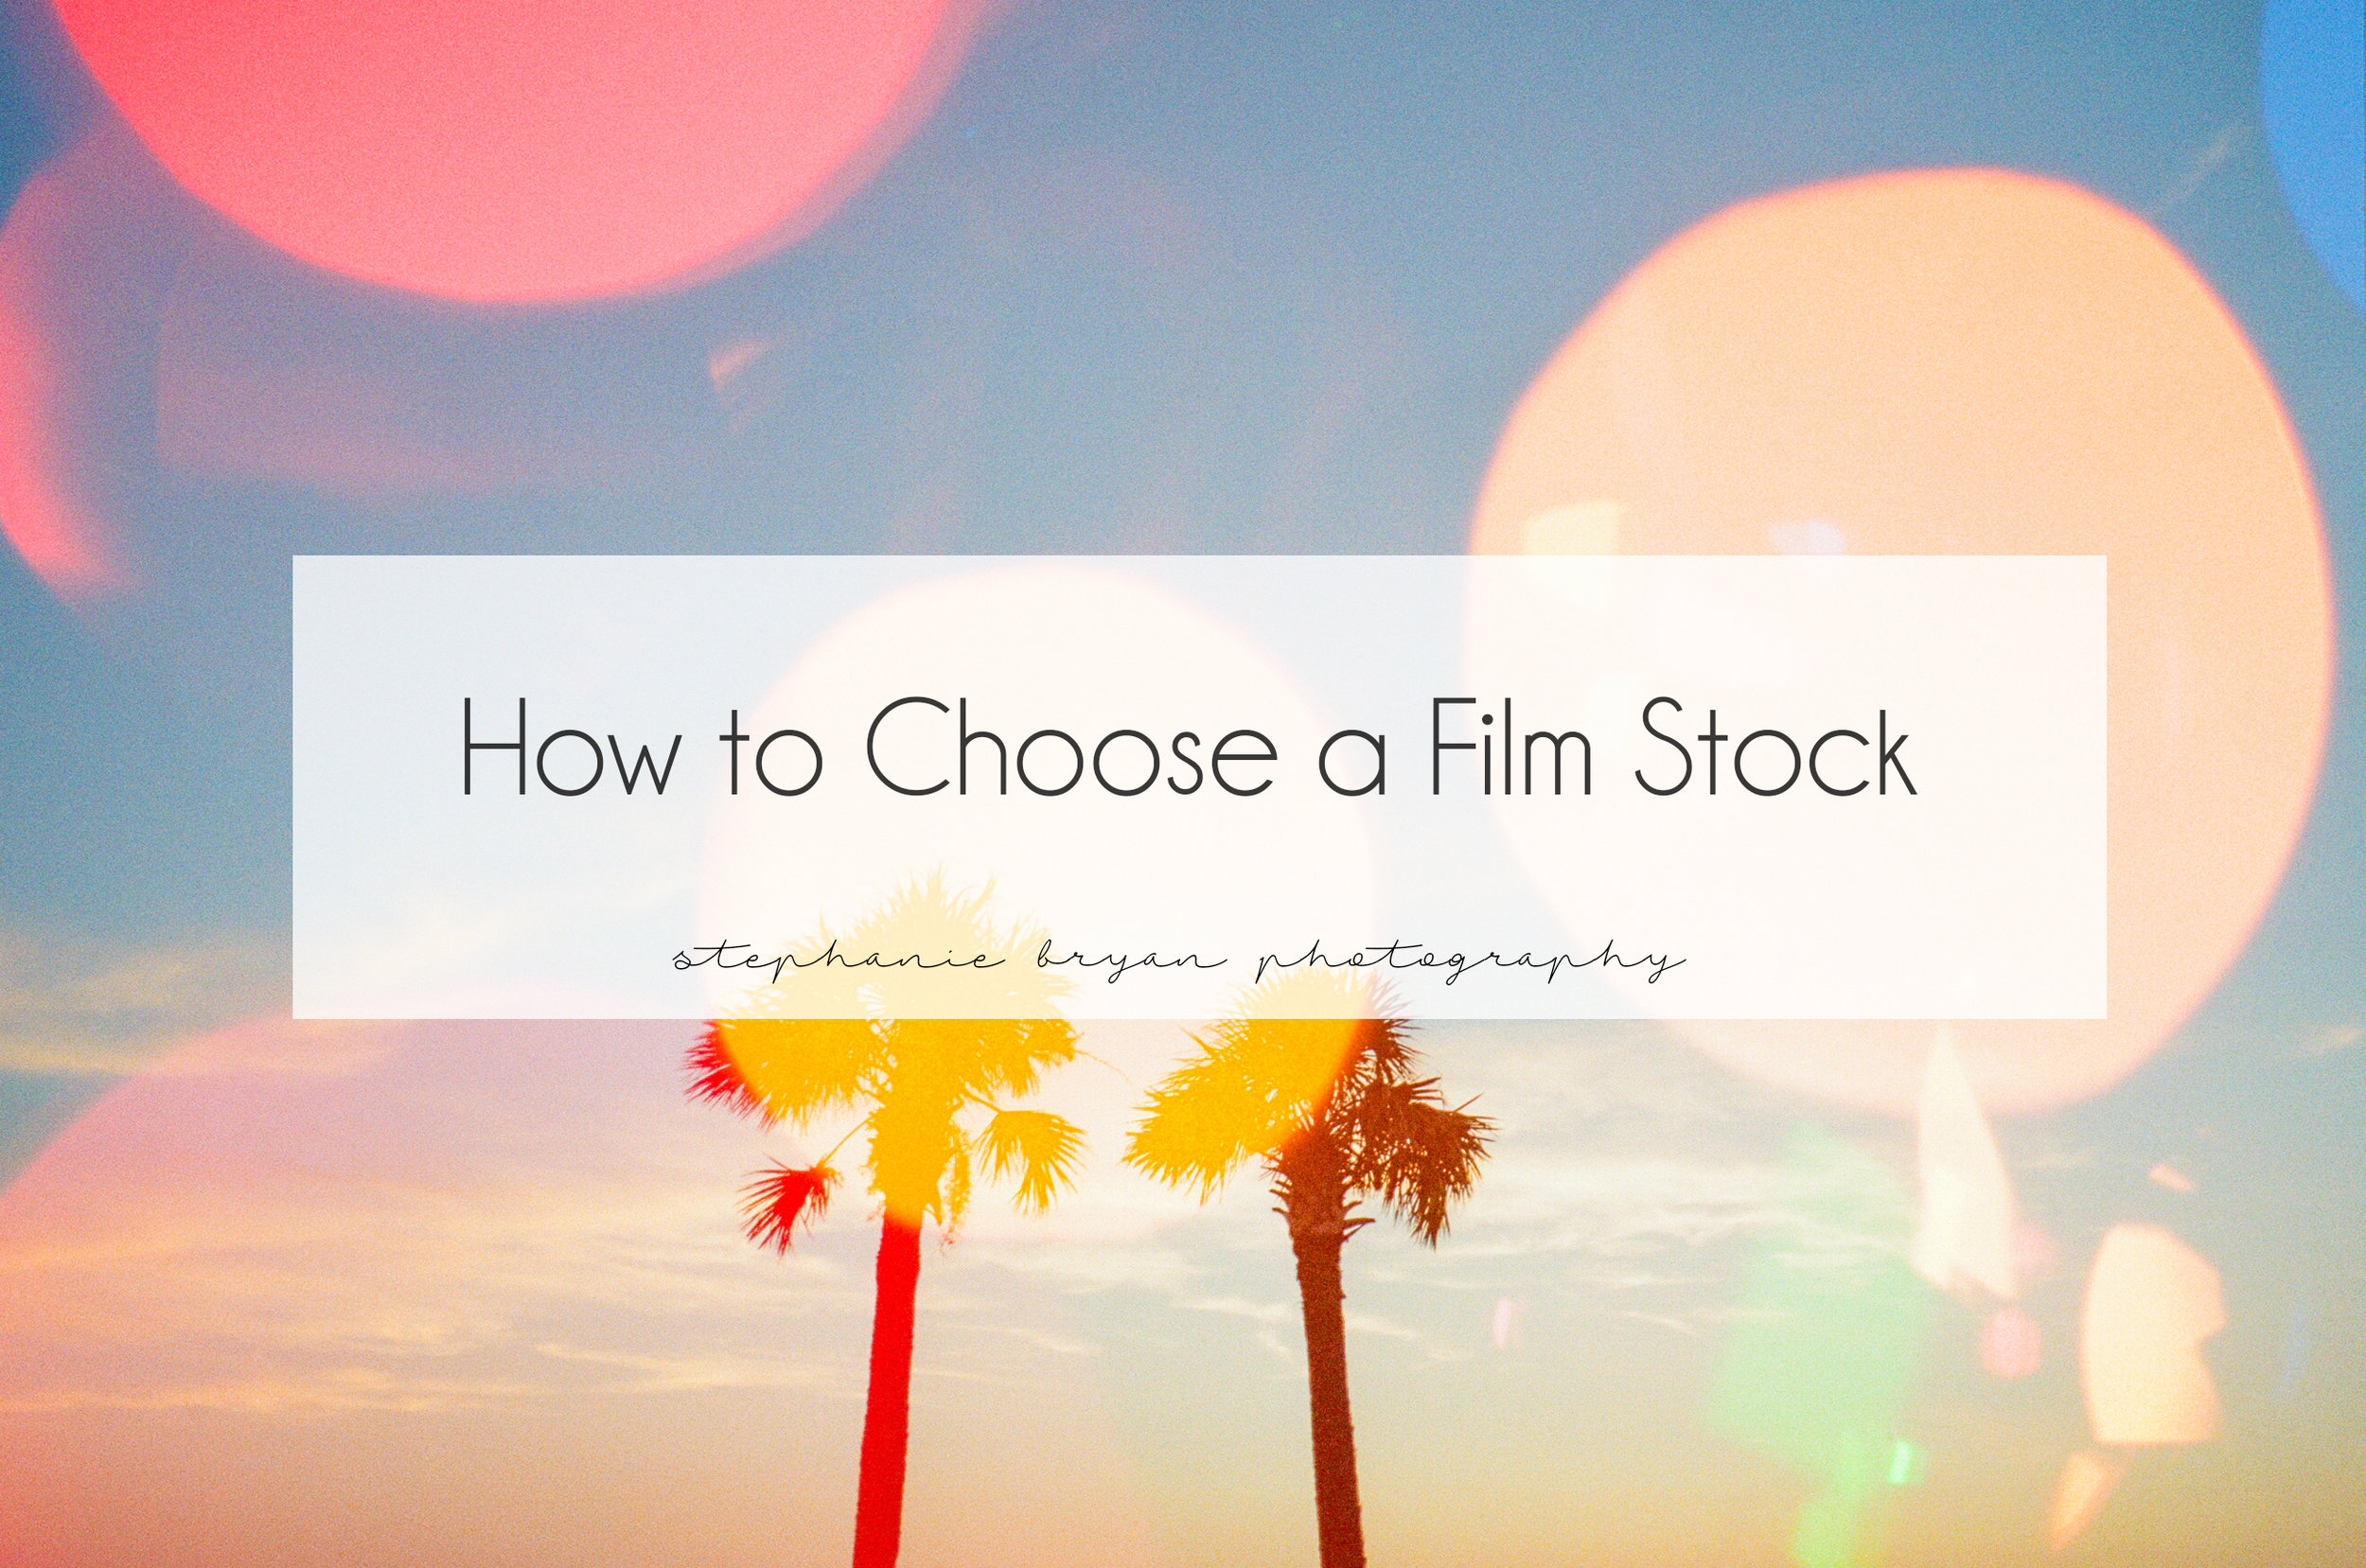 how-to-choose-a-film-stock-film-camera-analogue-photography-tutorial.jpg